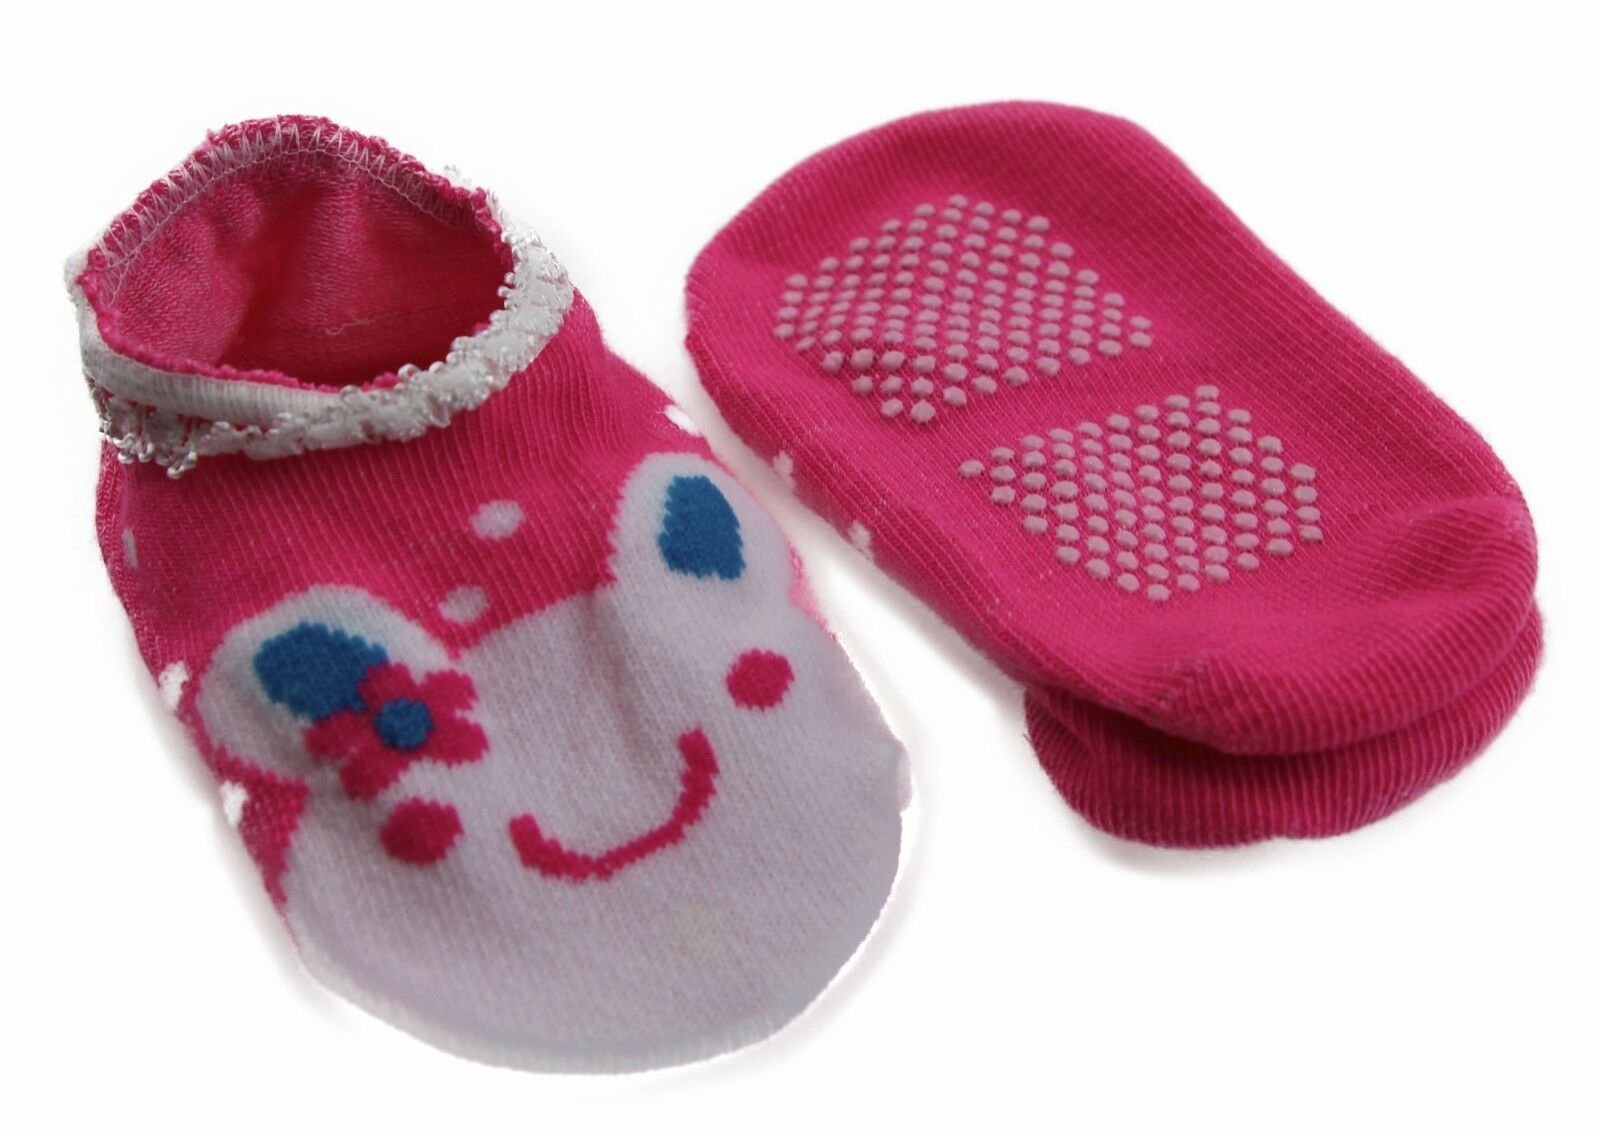 thumbnail 38 - Baby Footlets Kids Toddler Cotton Socks Anti Slip Grip Boys Girls 6-18 Months